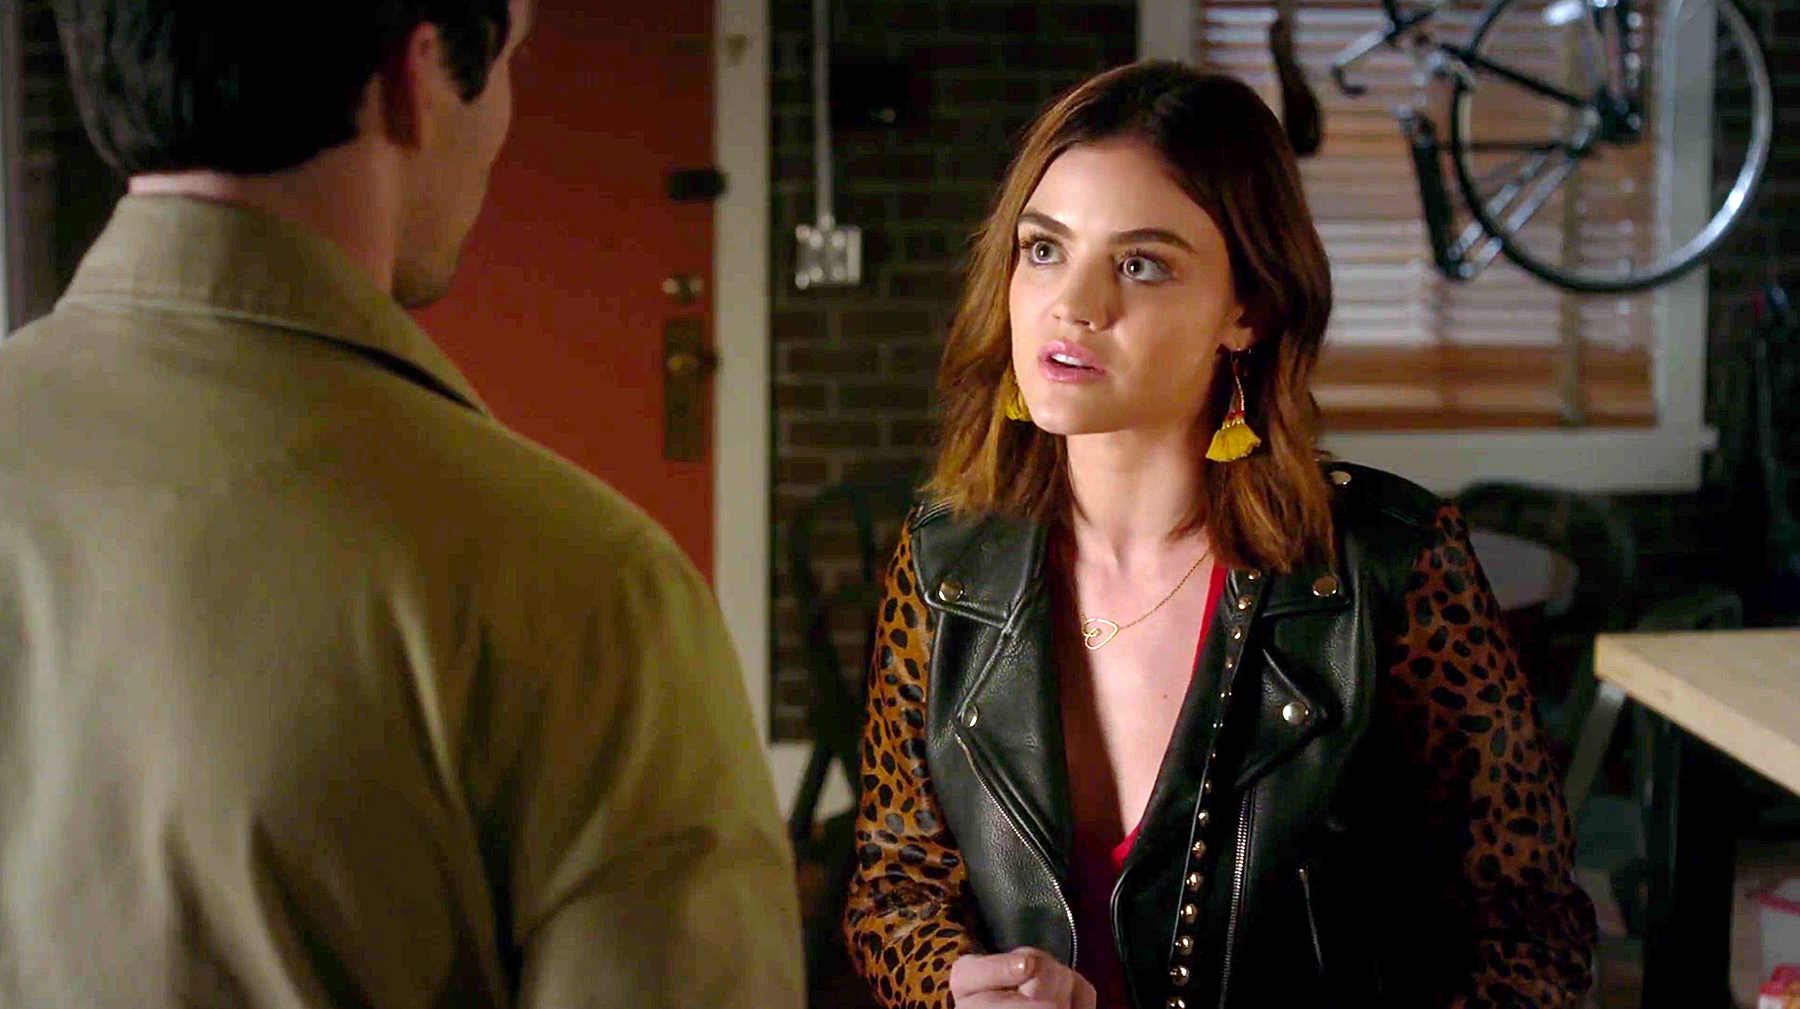 Is anyone on pll dating in real life